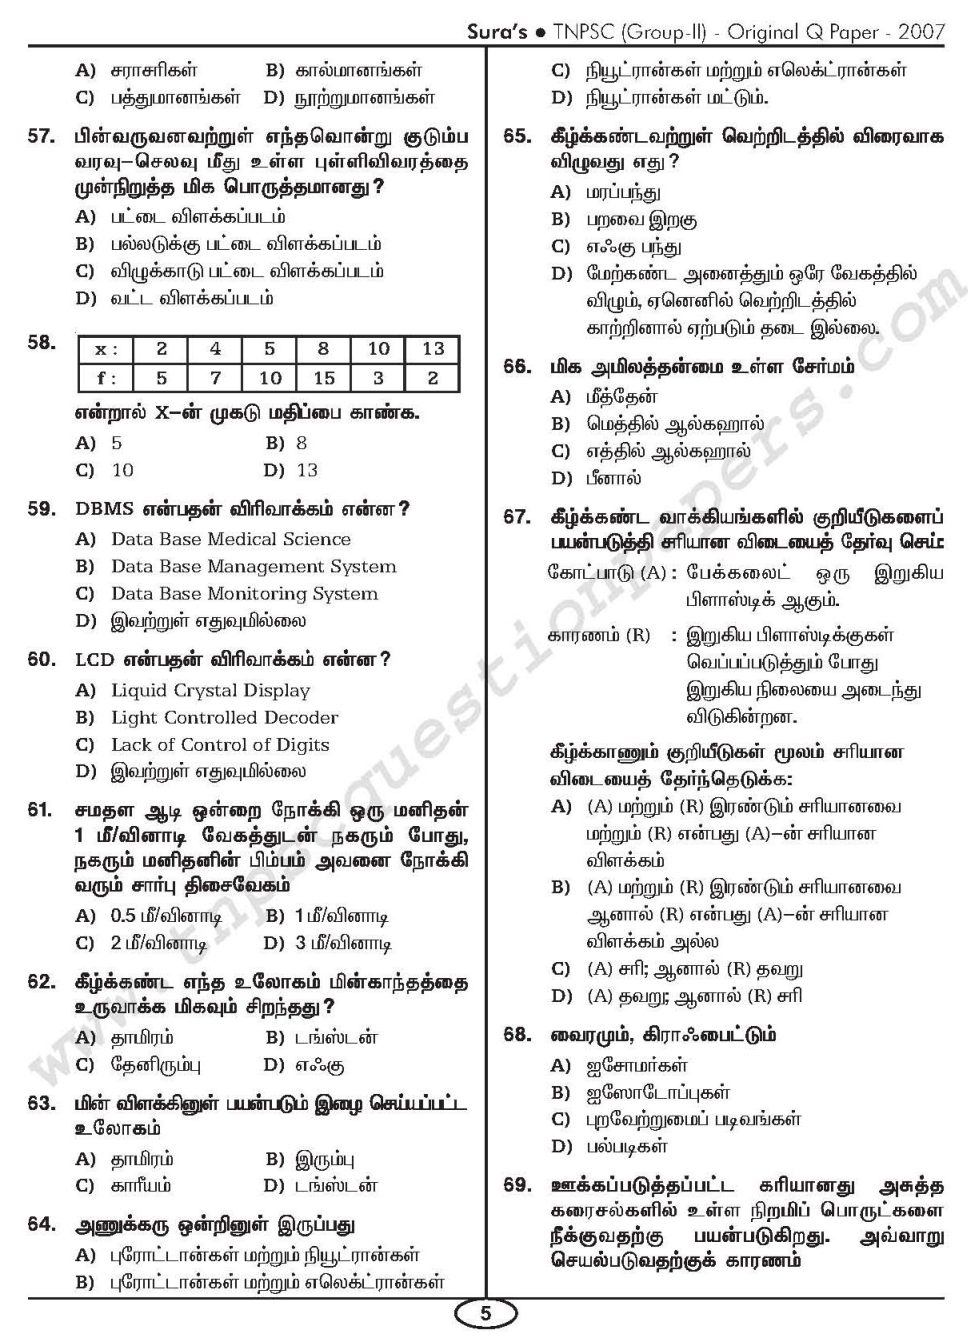 Previous year question papers of tamil nadu public service commission group 2 papers contact details tamil nadu public service commission